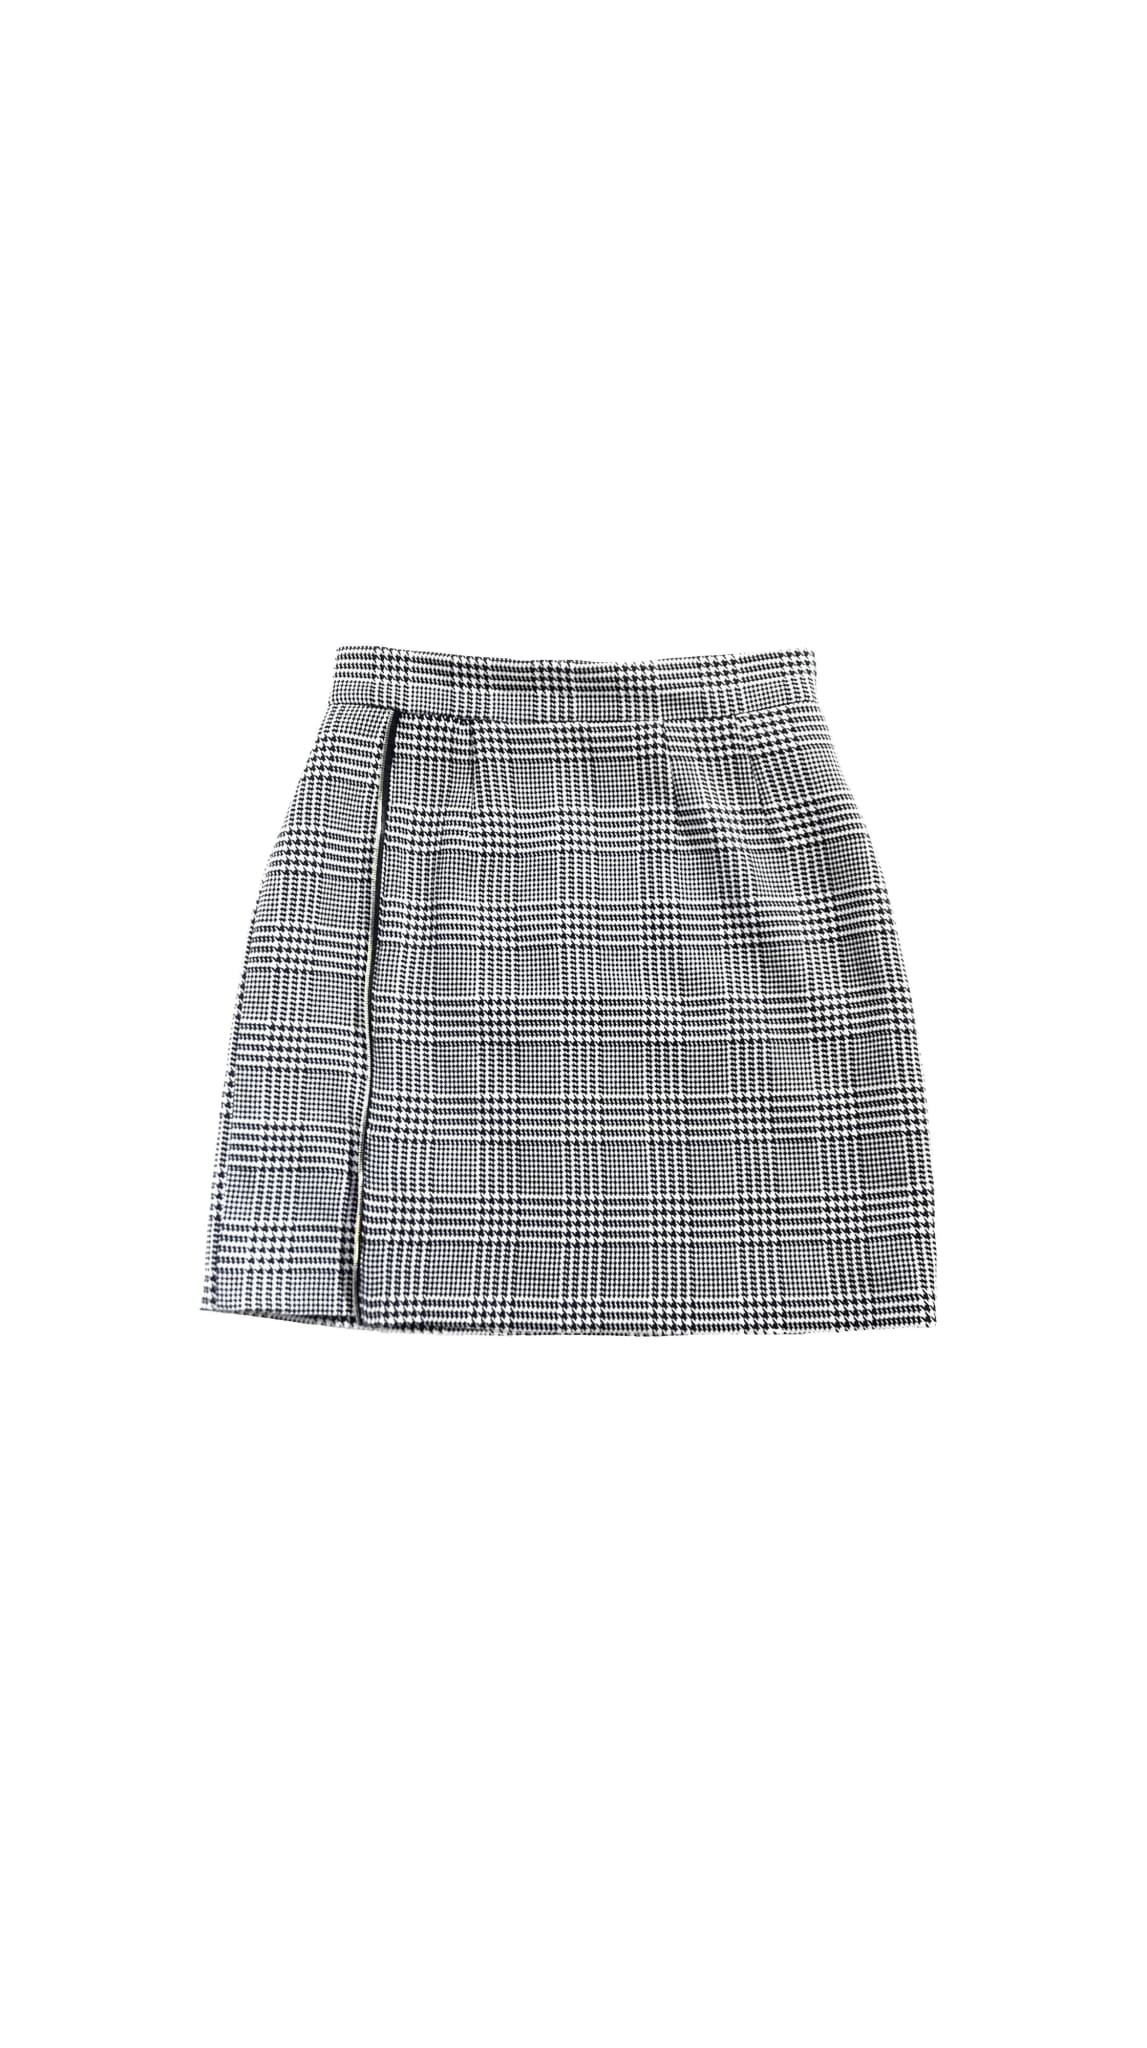 Black and white houndstooth Off Pattern zipper Skirt by Chanho Jang | Nineteenth Amendment